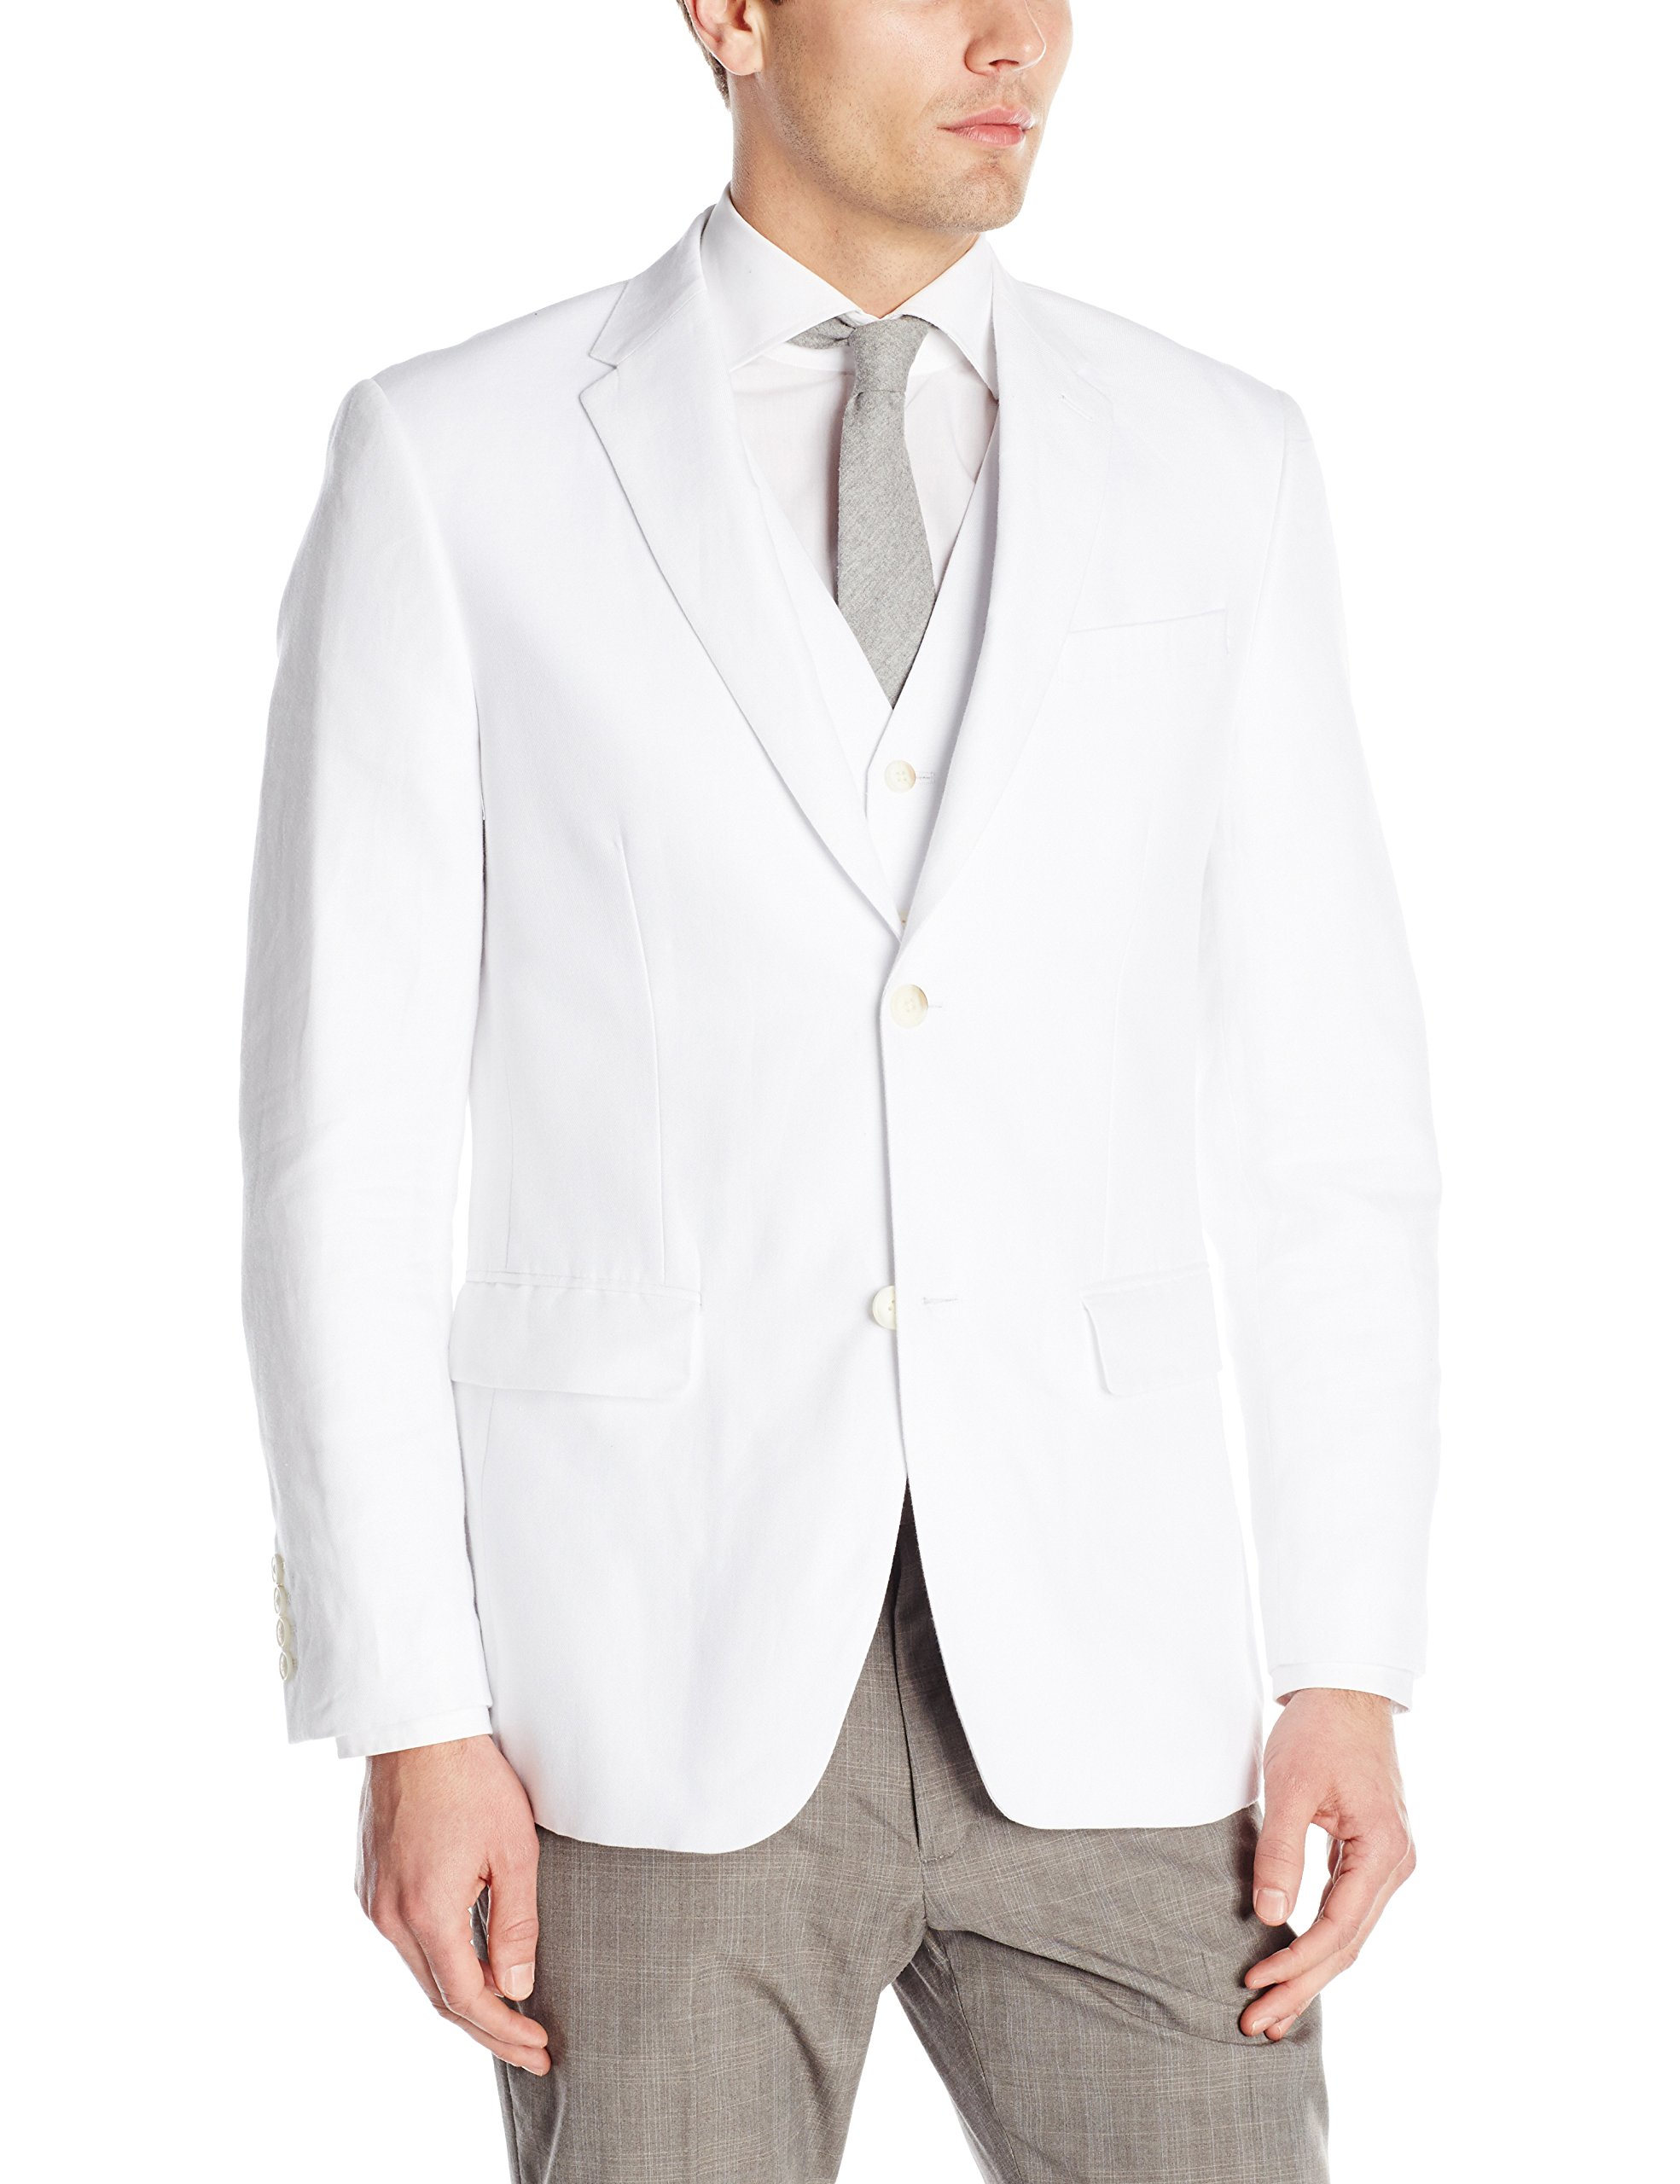 Perry Ellis Men's Linen Suit Jacket, Bright White, 40/Medium by Perry Ellis